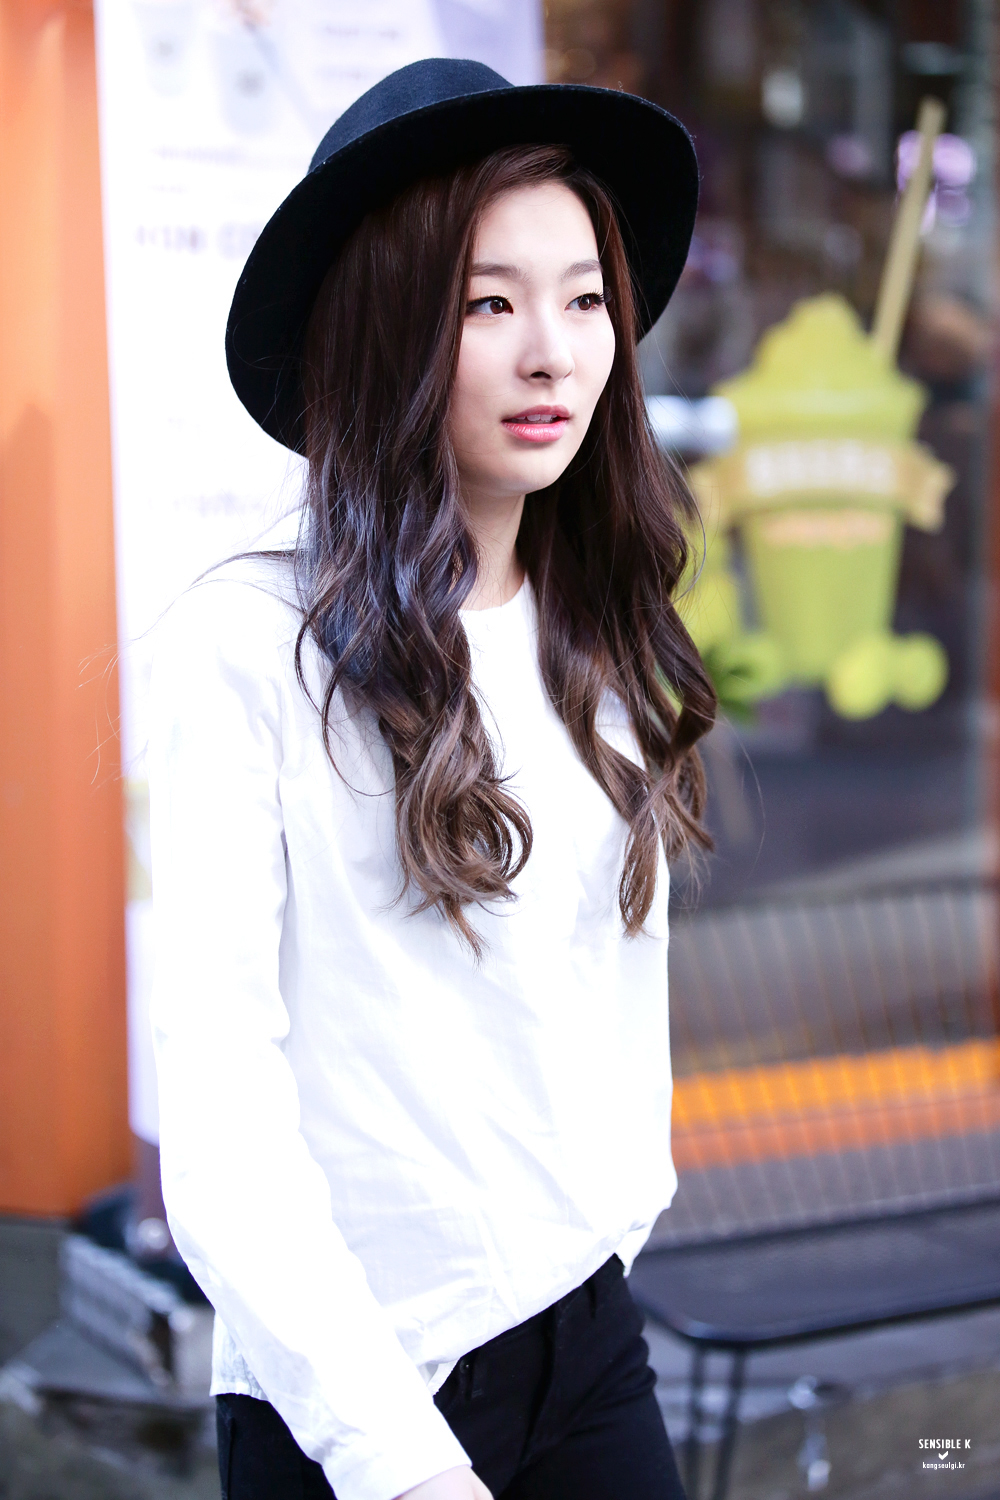 Kang Seul Gi Android Iphone Wallpaper 33833 Asiachan Kpop Image Board